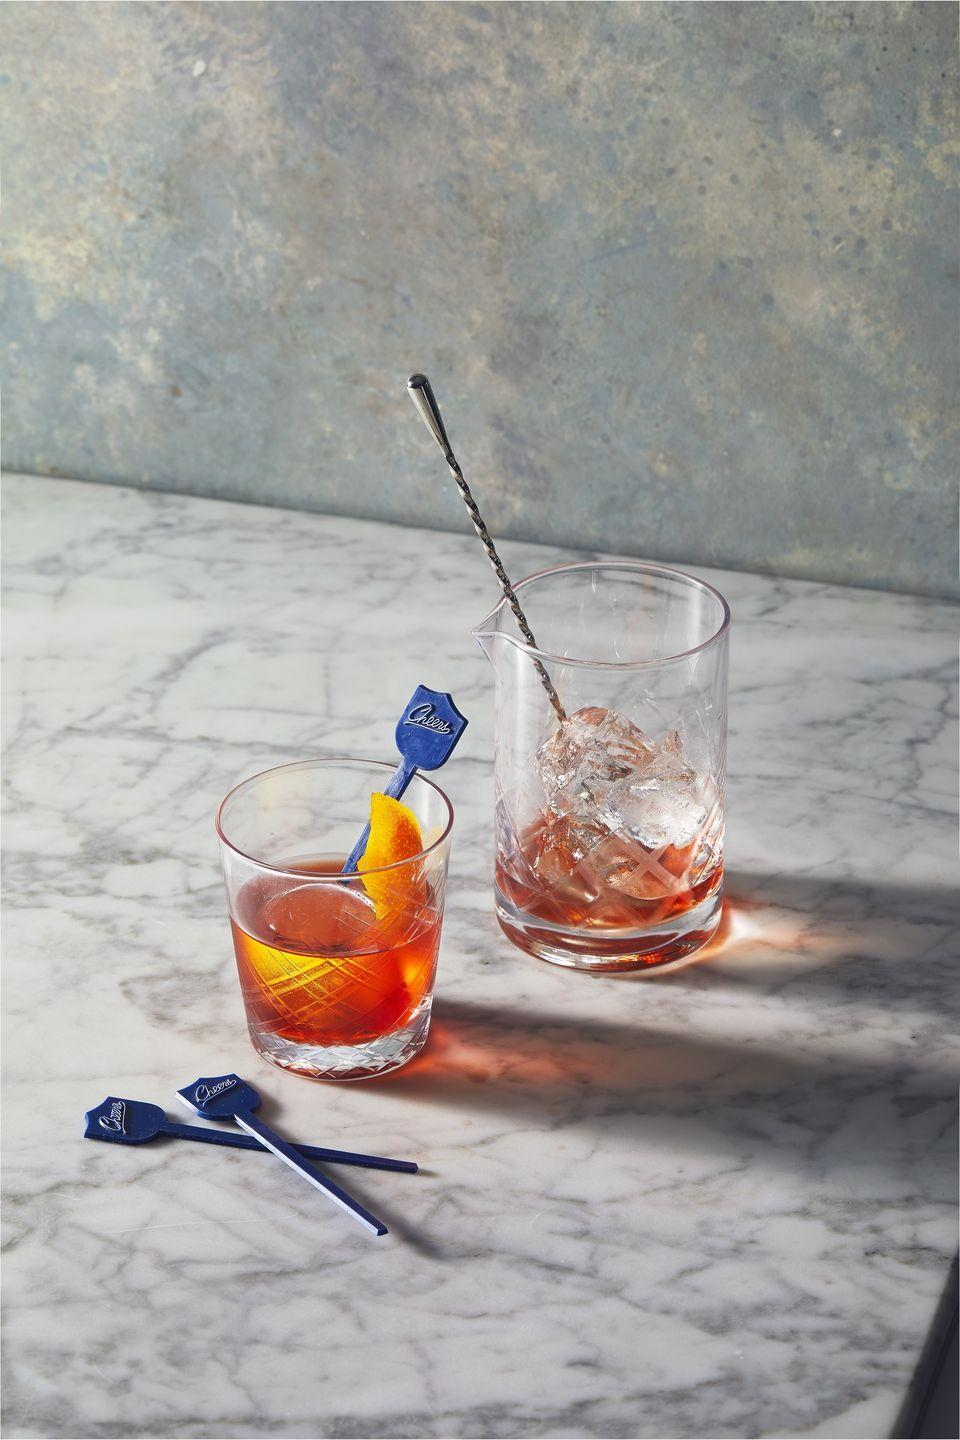 <p>This classic aperitif (best enjoyed before dinner!), first created in Florence, Italy in 1919, is the perfect balance of bitter and citrusy. In a cocktail shaker filled with ice, stir 1oz gin, 1 oz Campari and 1 oz sweet vermouth. Strain into a rocks glass filled with ice and serve with an orange twist.</p>